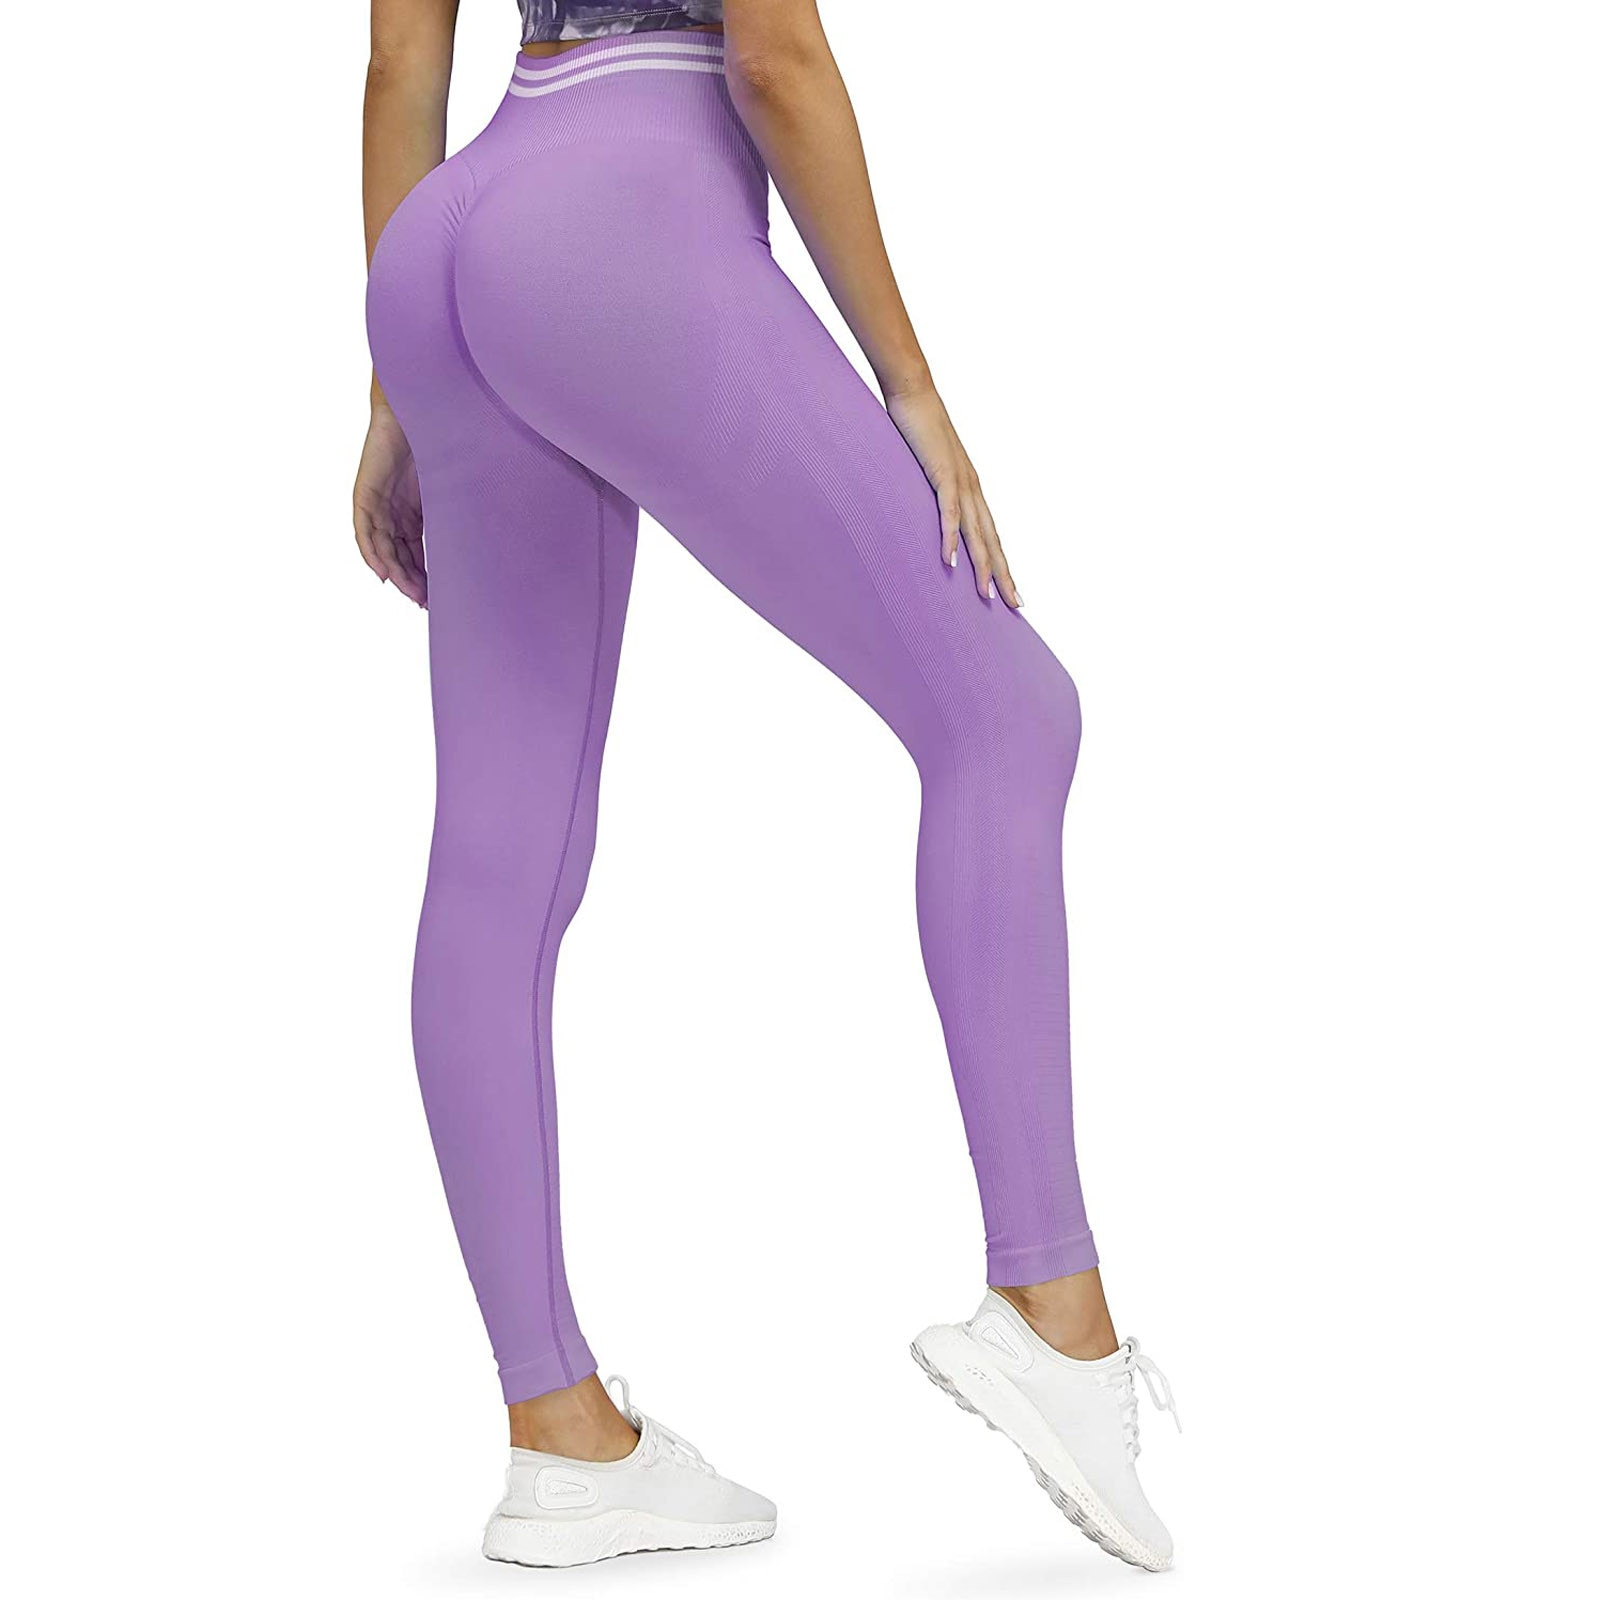 45# Women's Leggings Solid Workout Legging Fitness Sports Running Athletic Seamless Solid Woman Pants pantalones de mujer